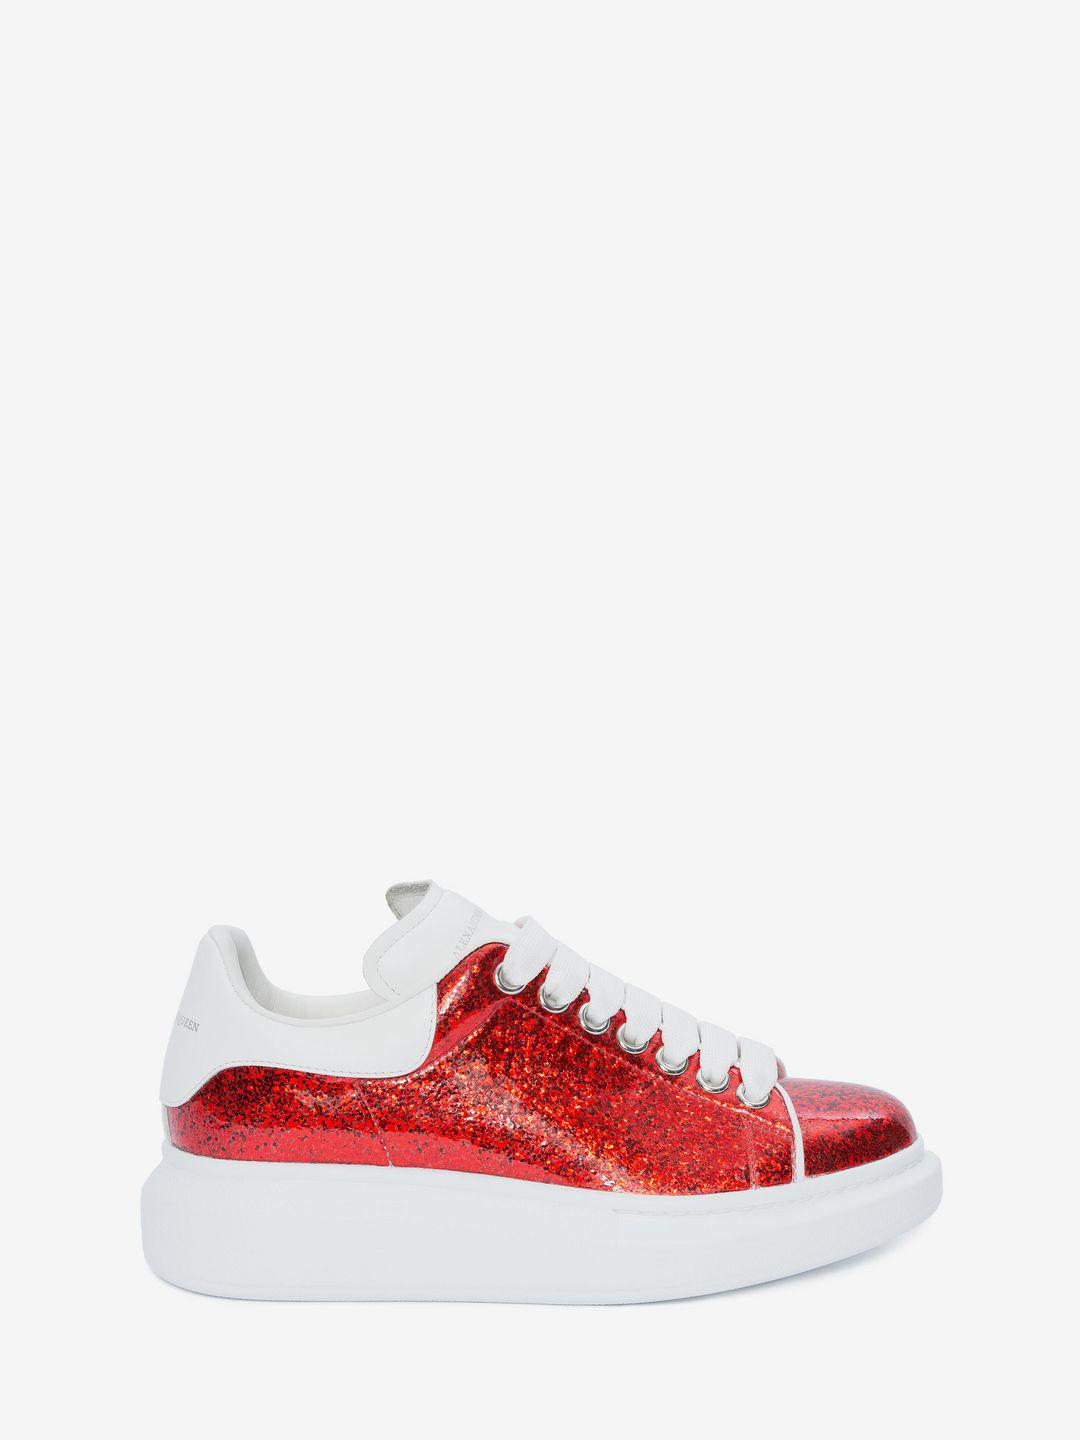 lyst alexander mcqueen oversized sneaker in red save 2. Black Bedroom Furniture Sets. Home Design Ideas